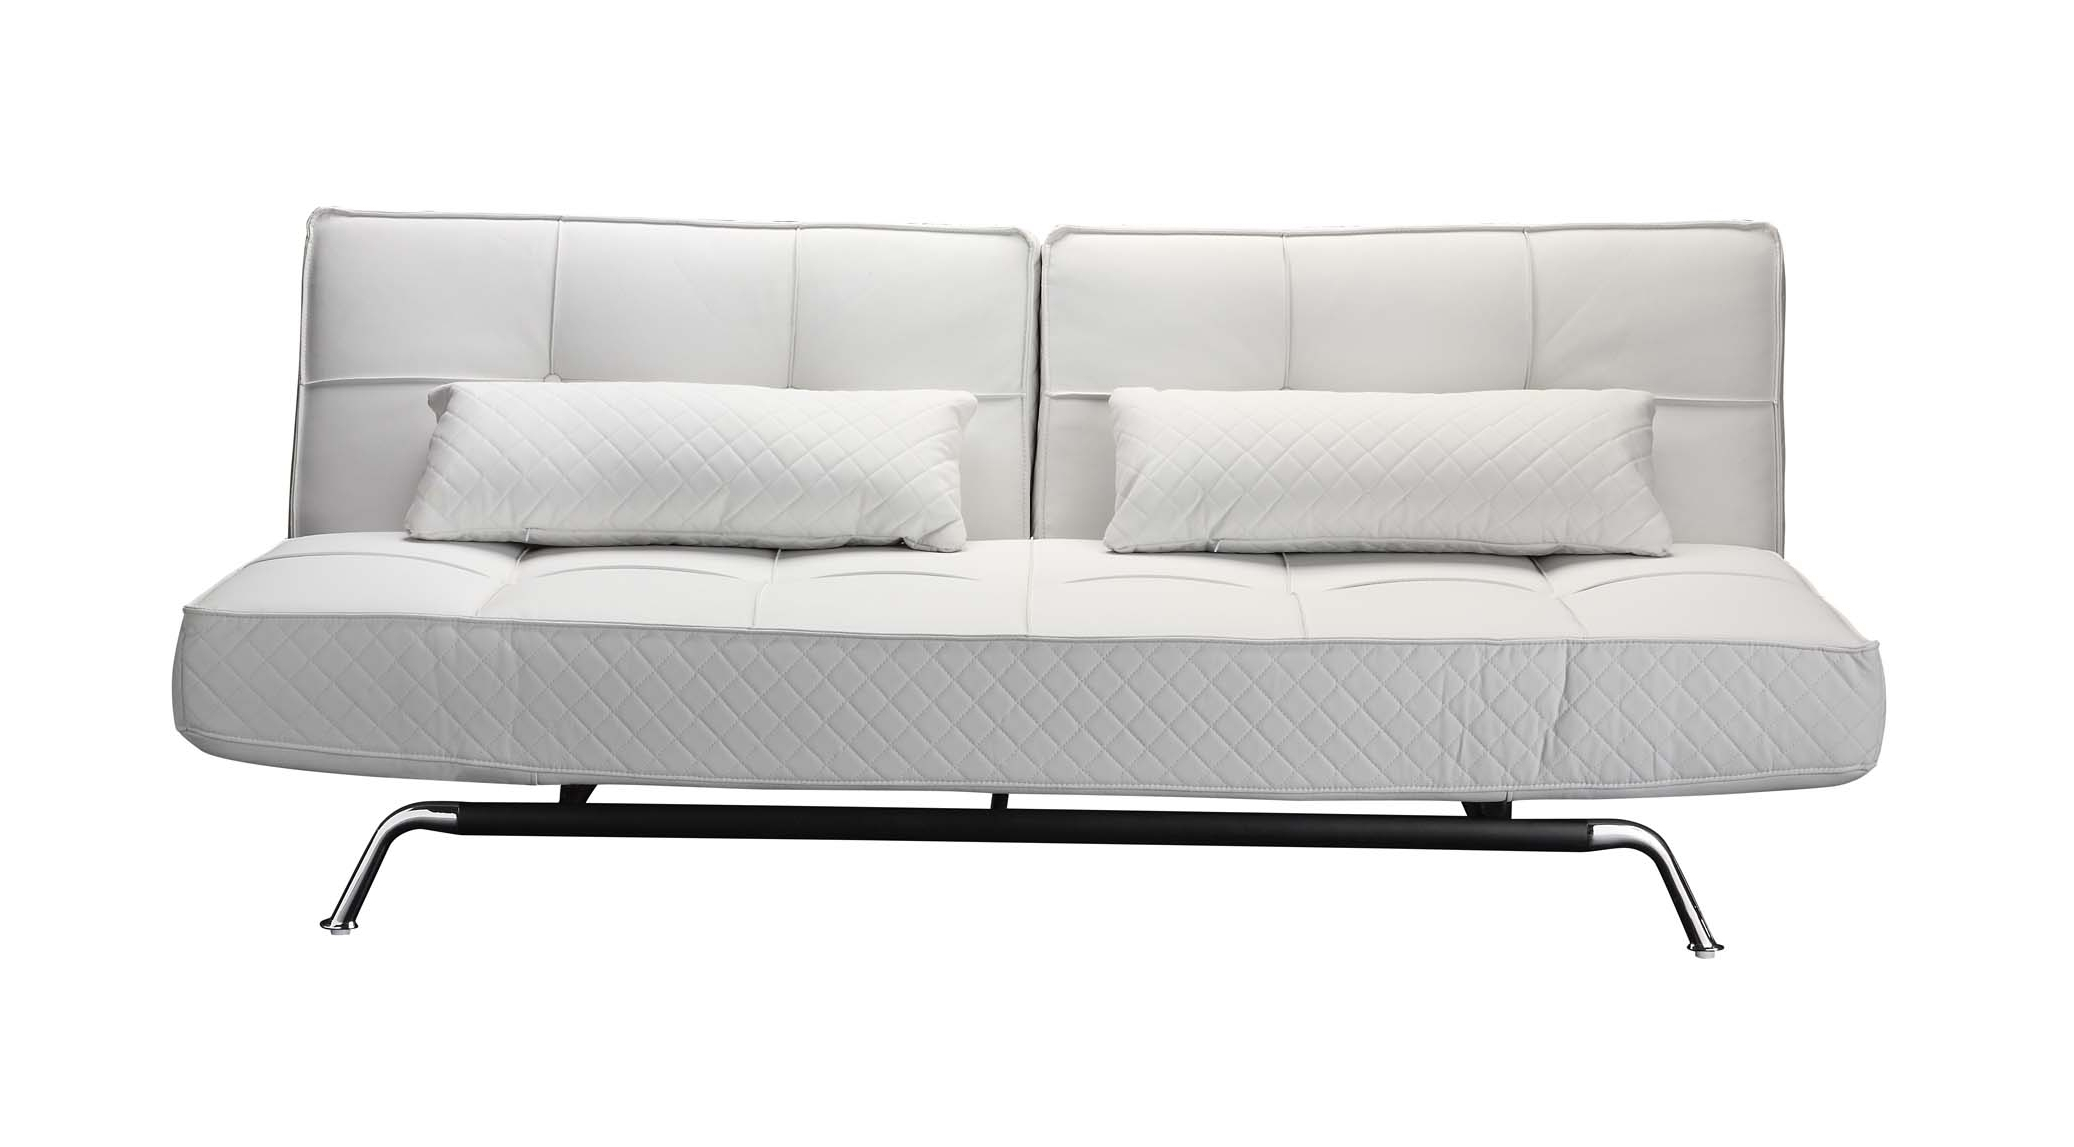 Trendy Amazing White Modern Sofa 24 In Contemporary Sofa Inspiration With Inside White Modern Sofas (View 5 of 15)